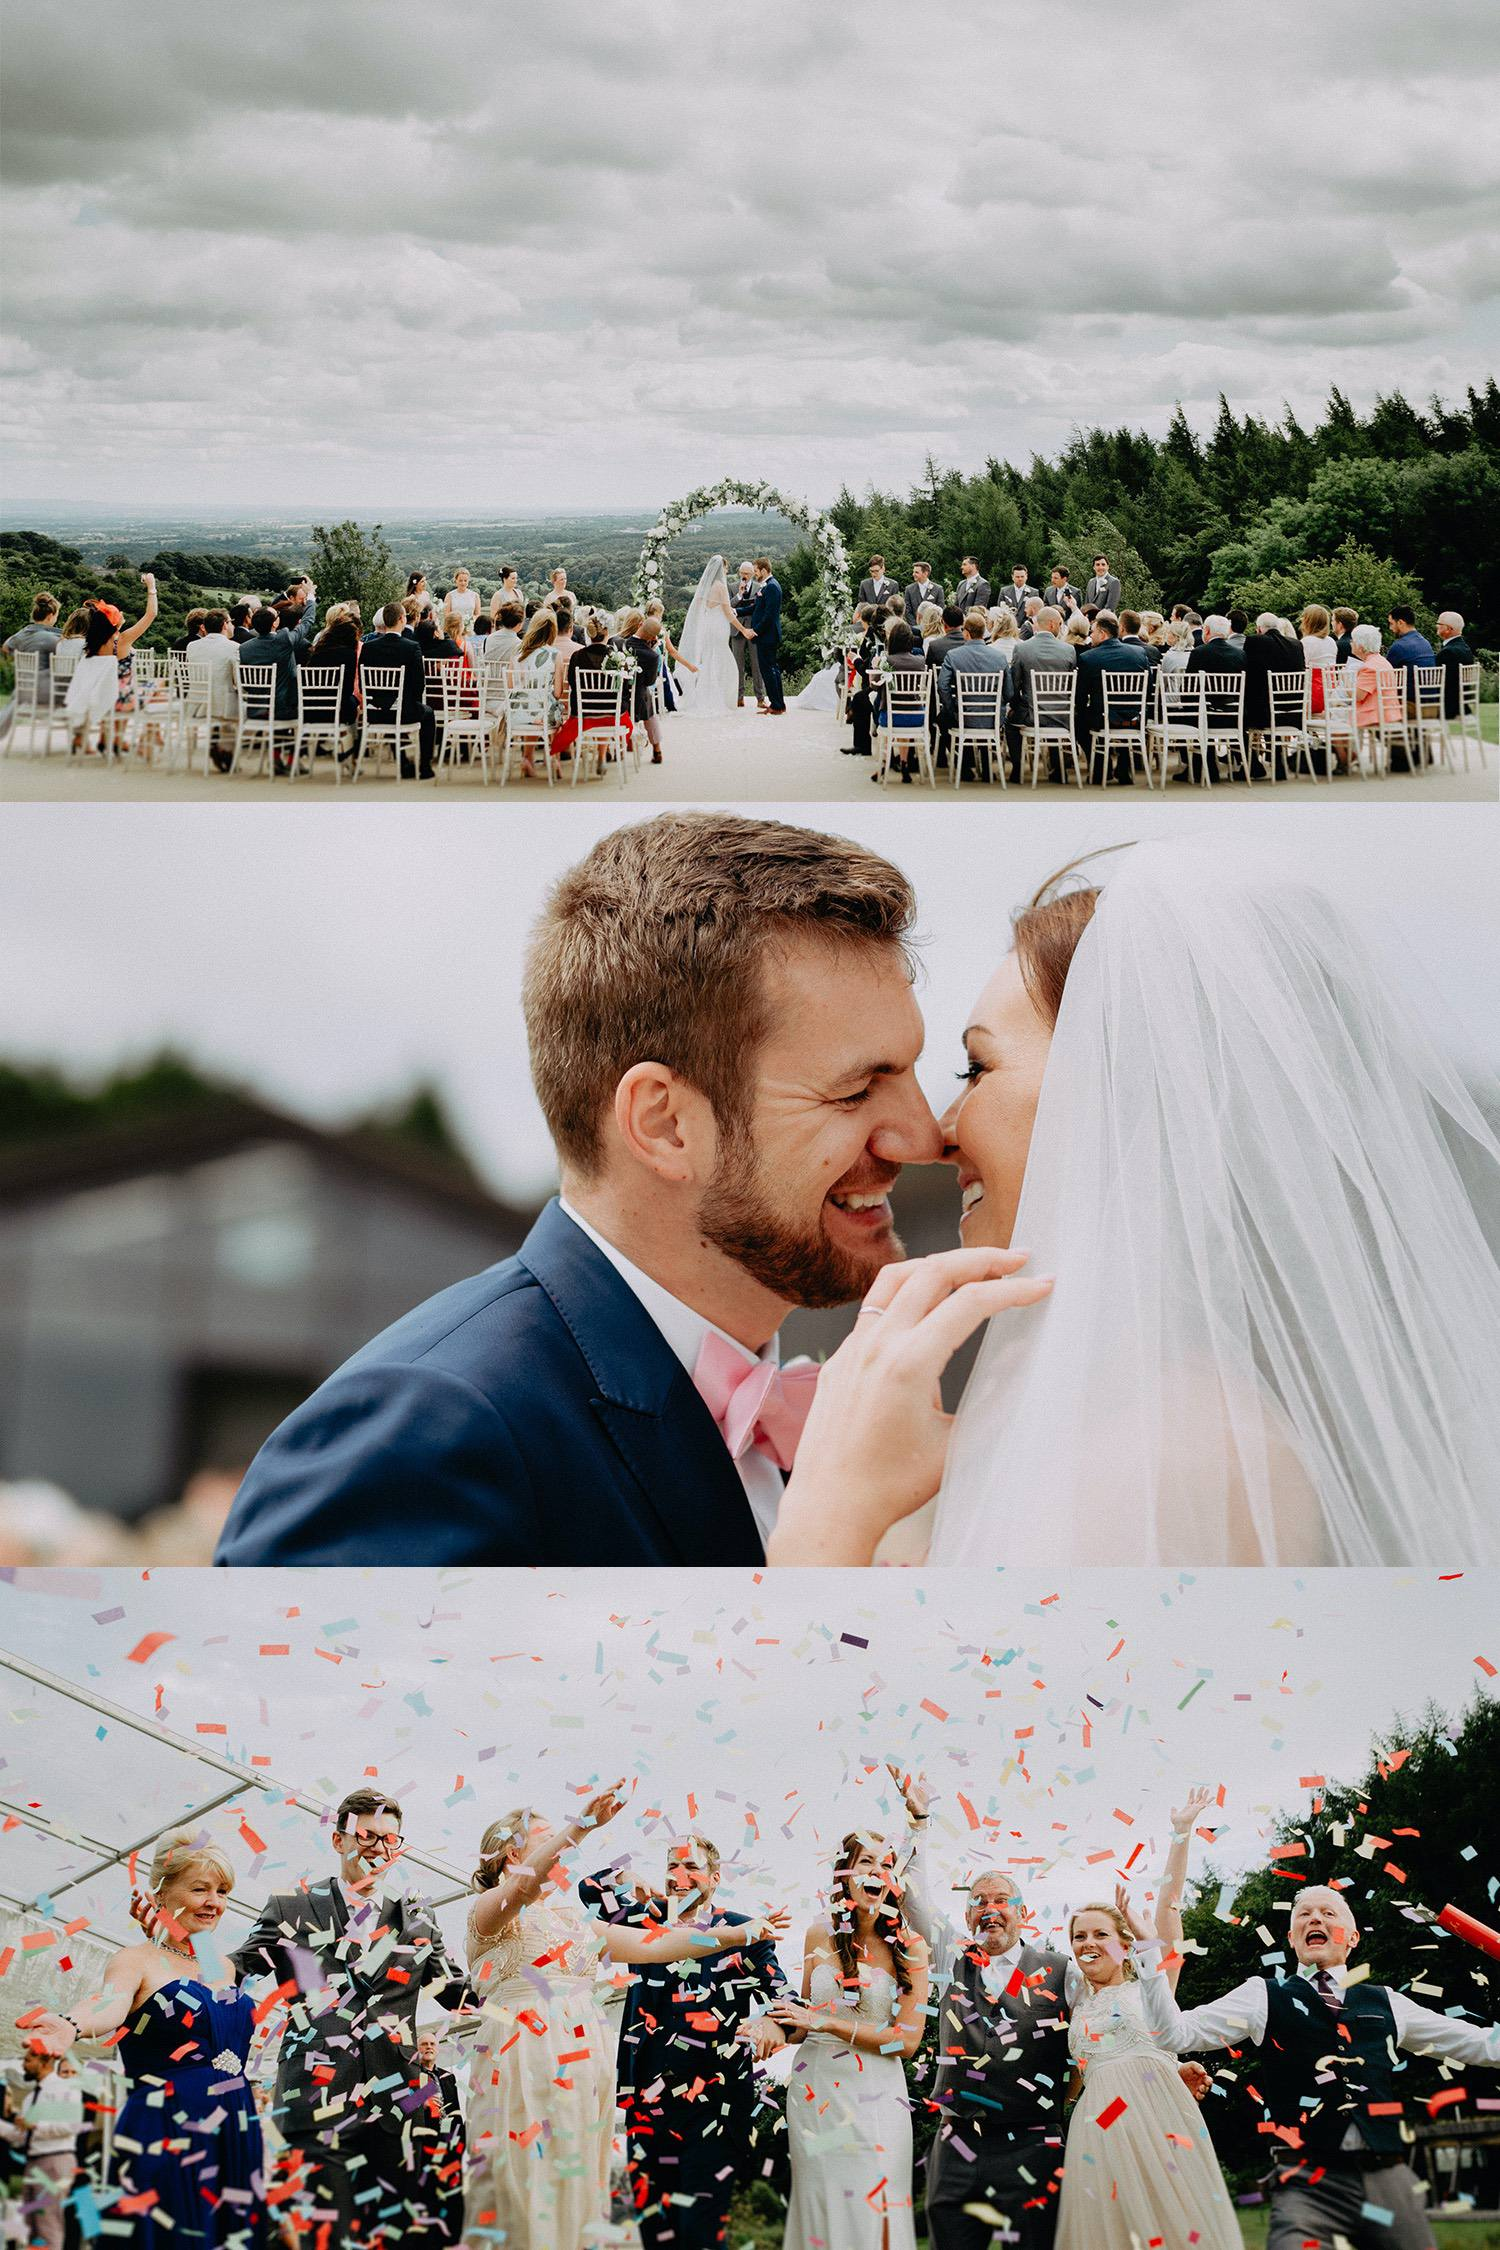 Wedding-Photographer-Natural-Retreats-Yorkshire-Paul-Liddement.jpg